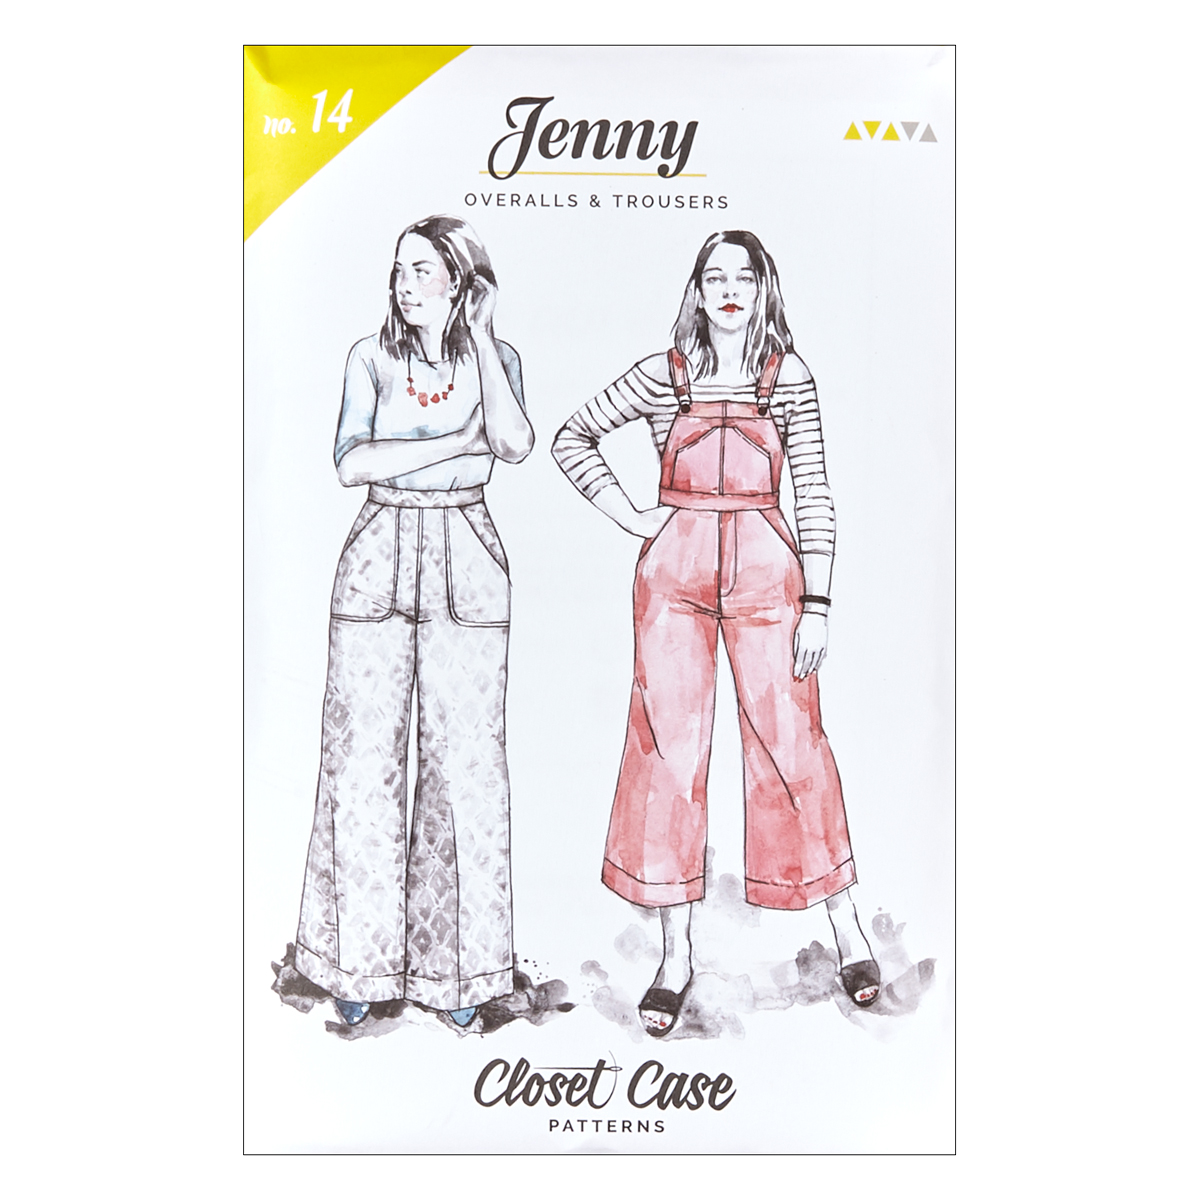 1940s Fabrics and Colors in Fashion Closet Case Jenny Overalls  Trousers $18.00 AT vintagedancer.com